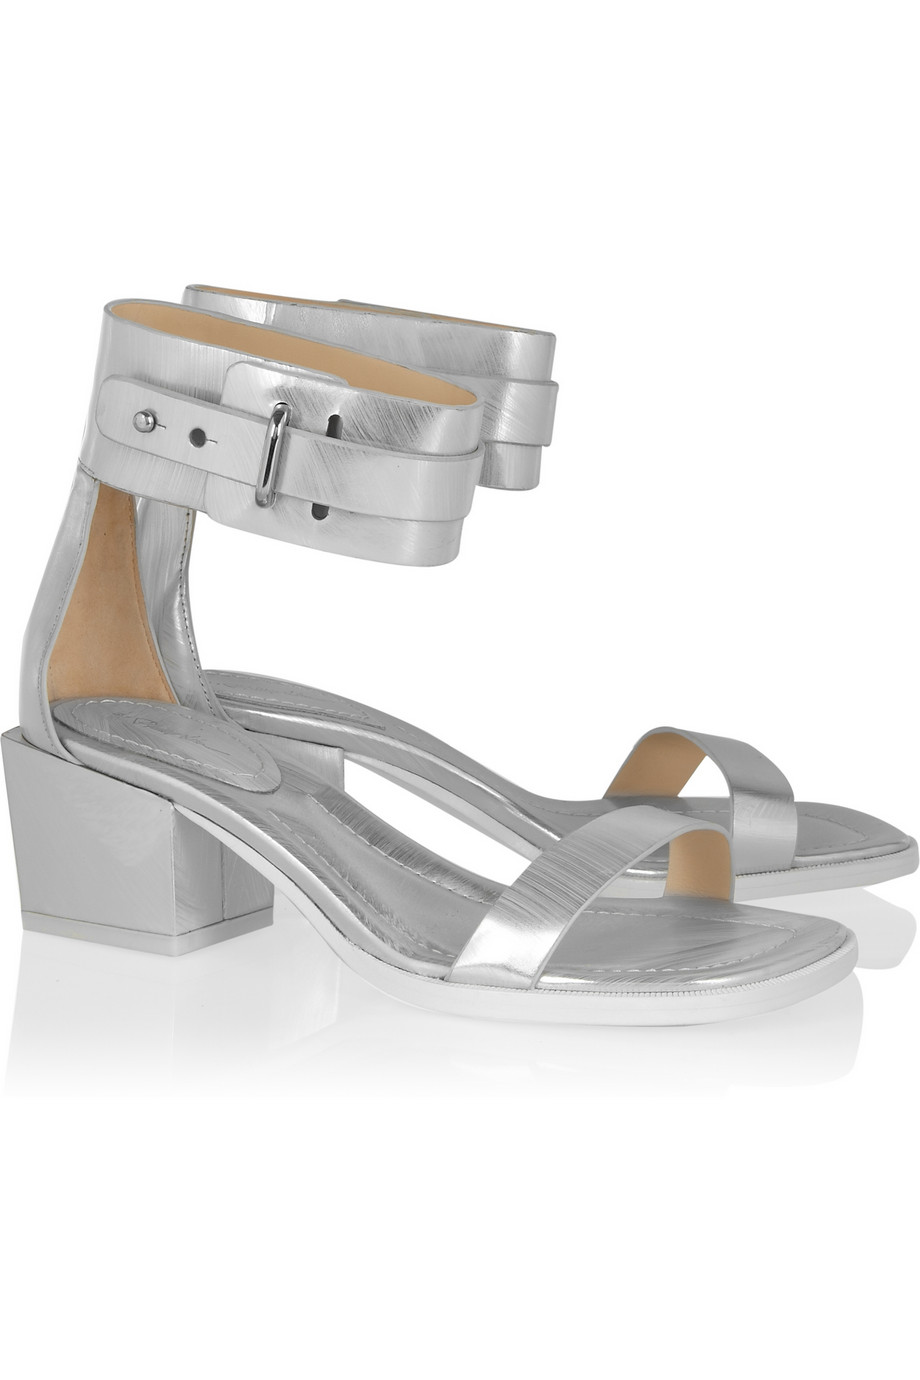 3.1 Phillip Lim coco metallic-leather sandals